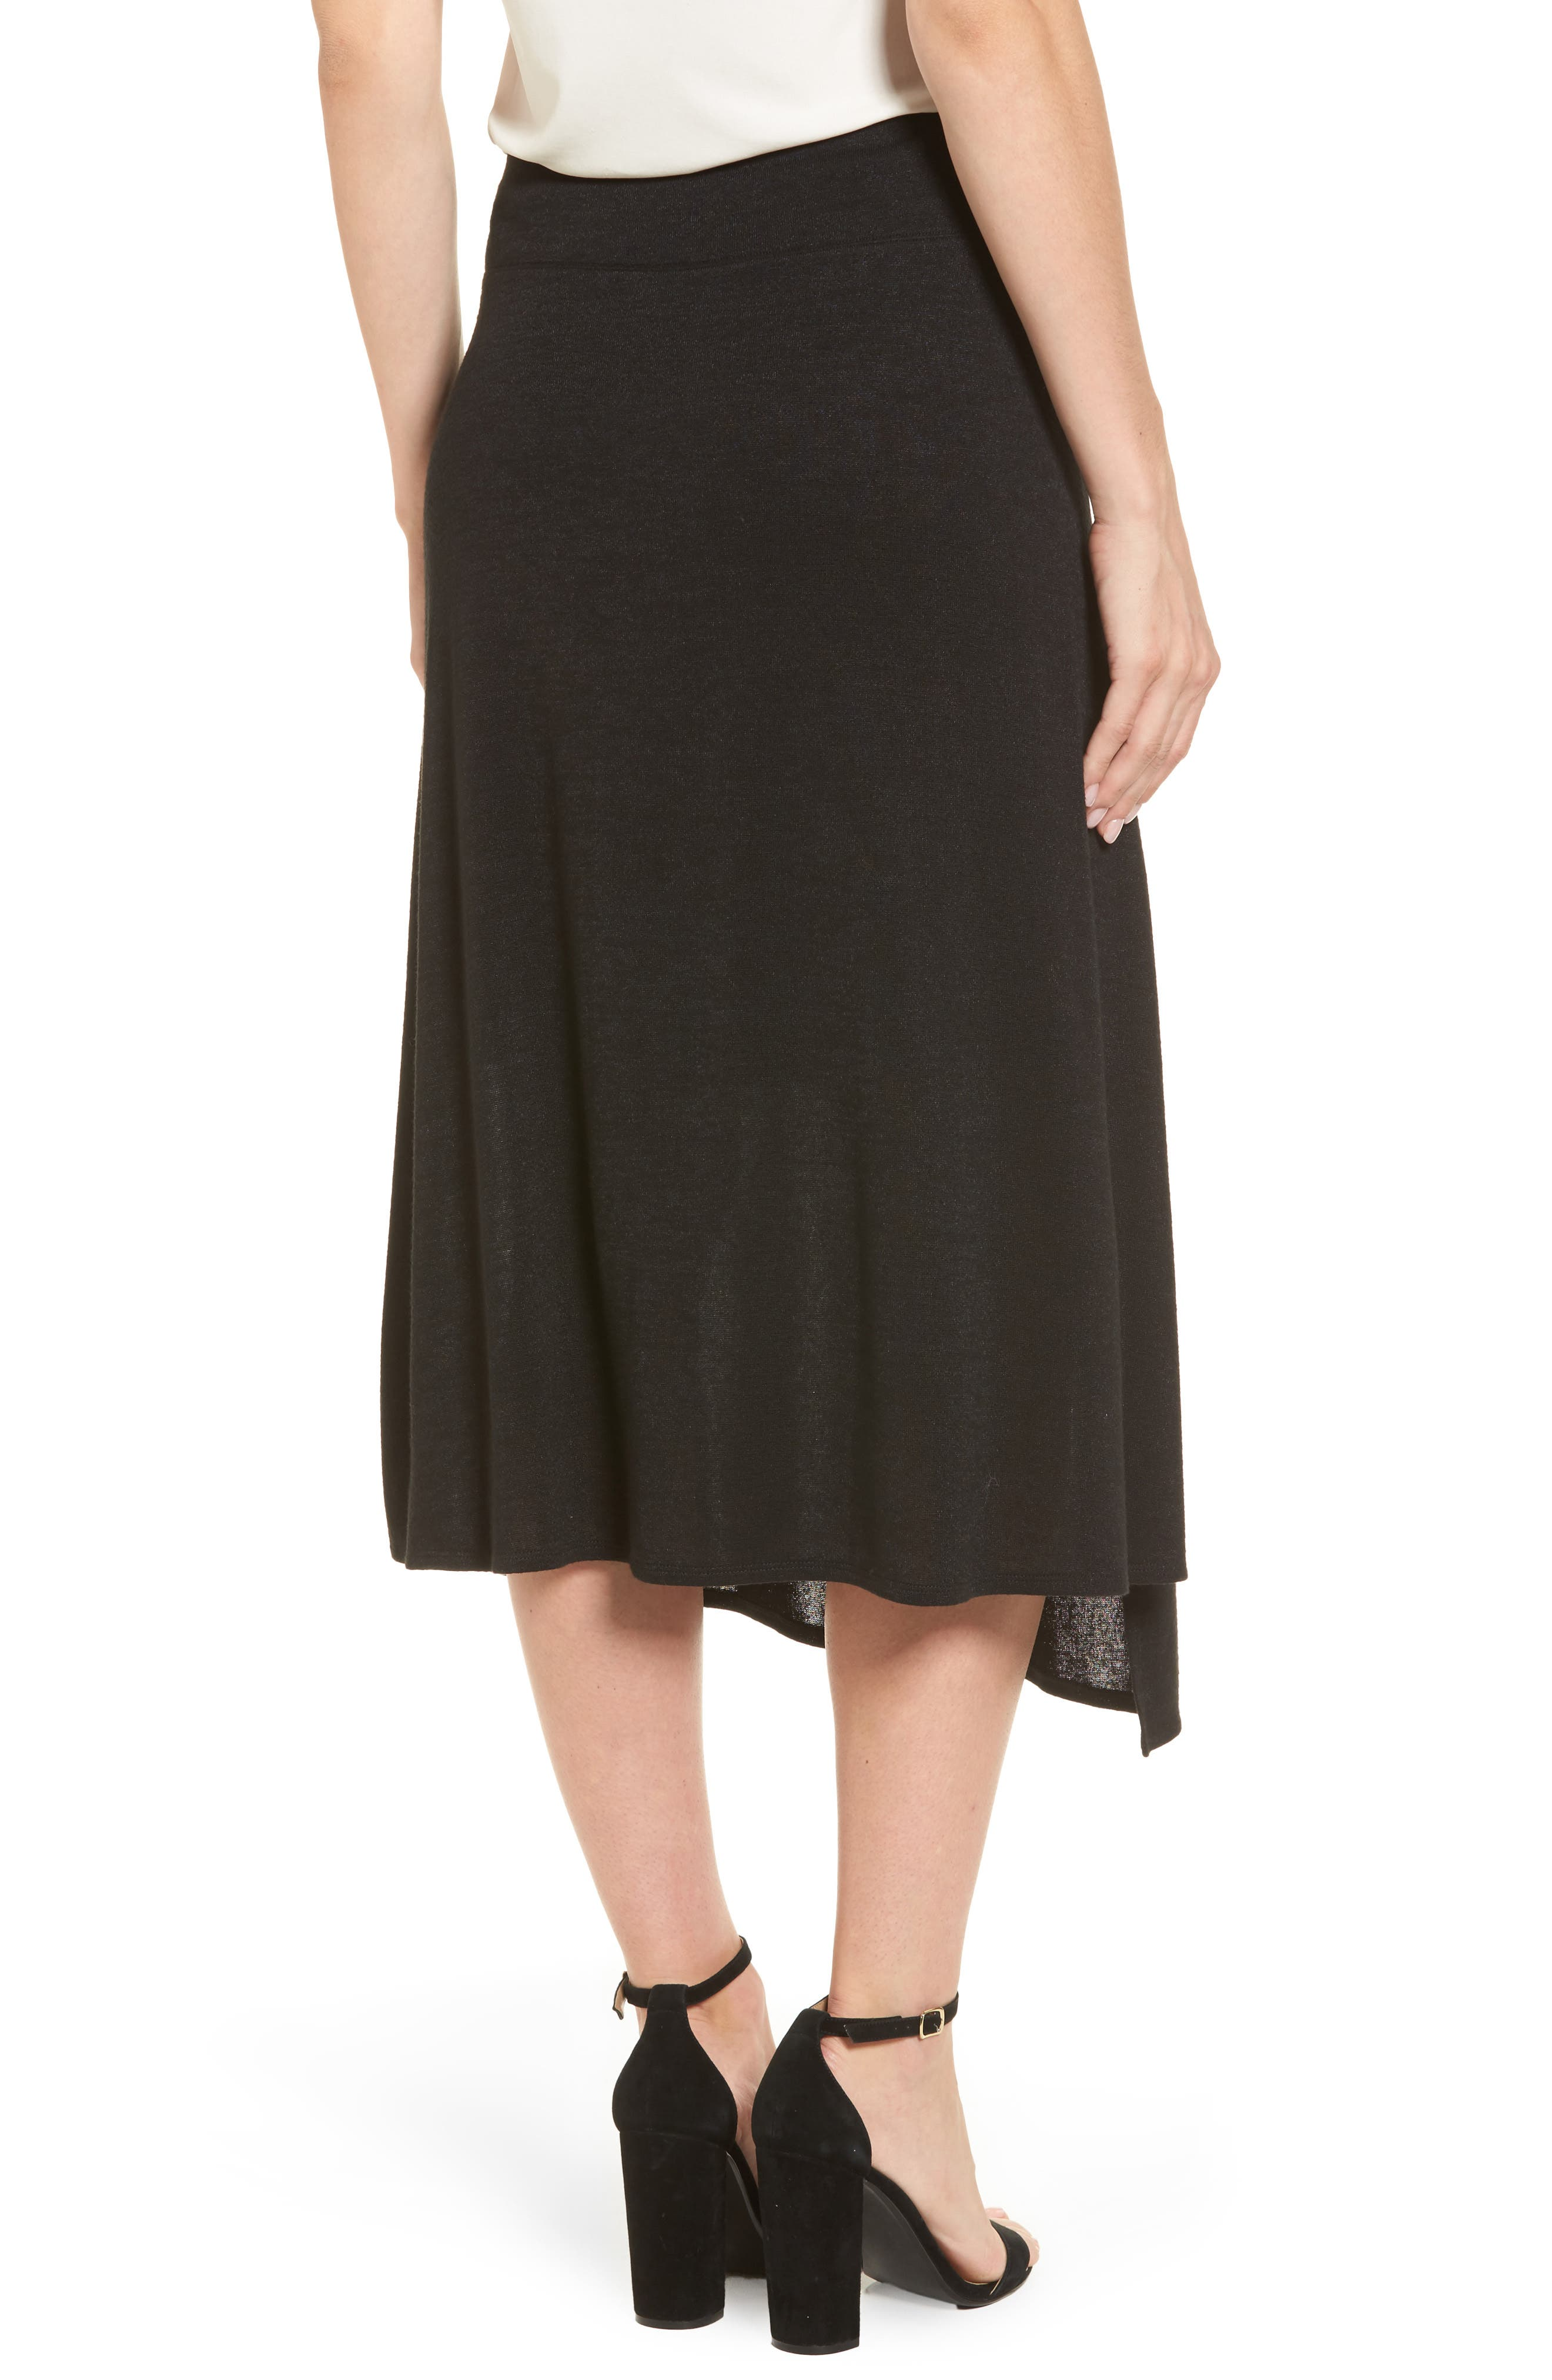 Nic + Zoe Every Occasion Faux Wrap Skirt,                             Alternate thumbnail 3, color,